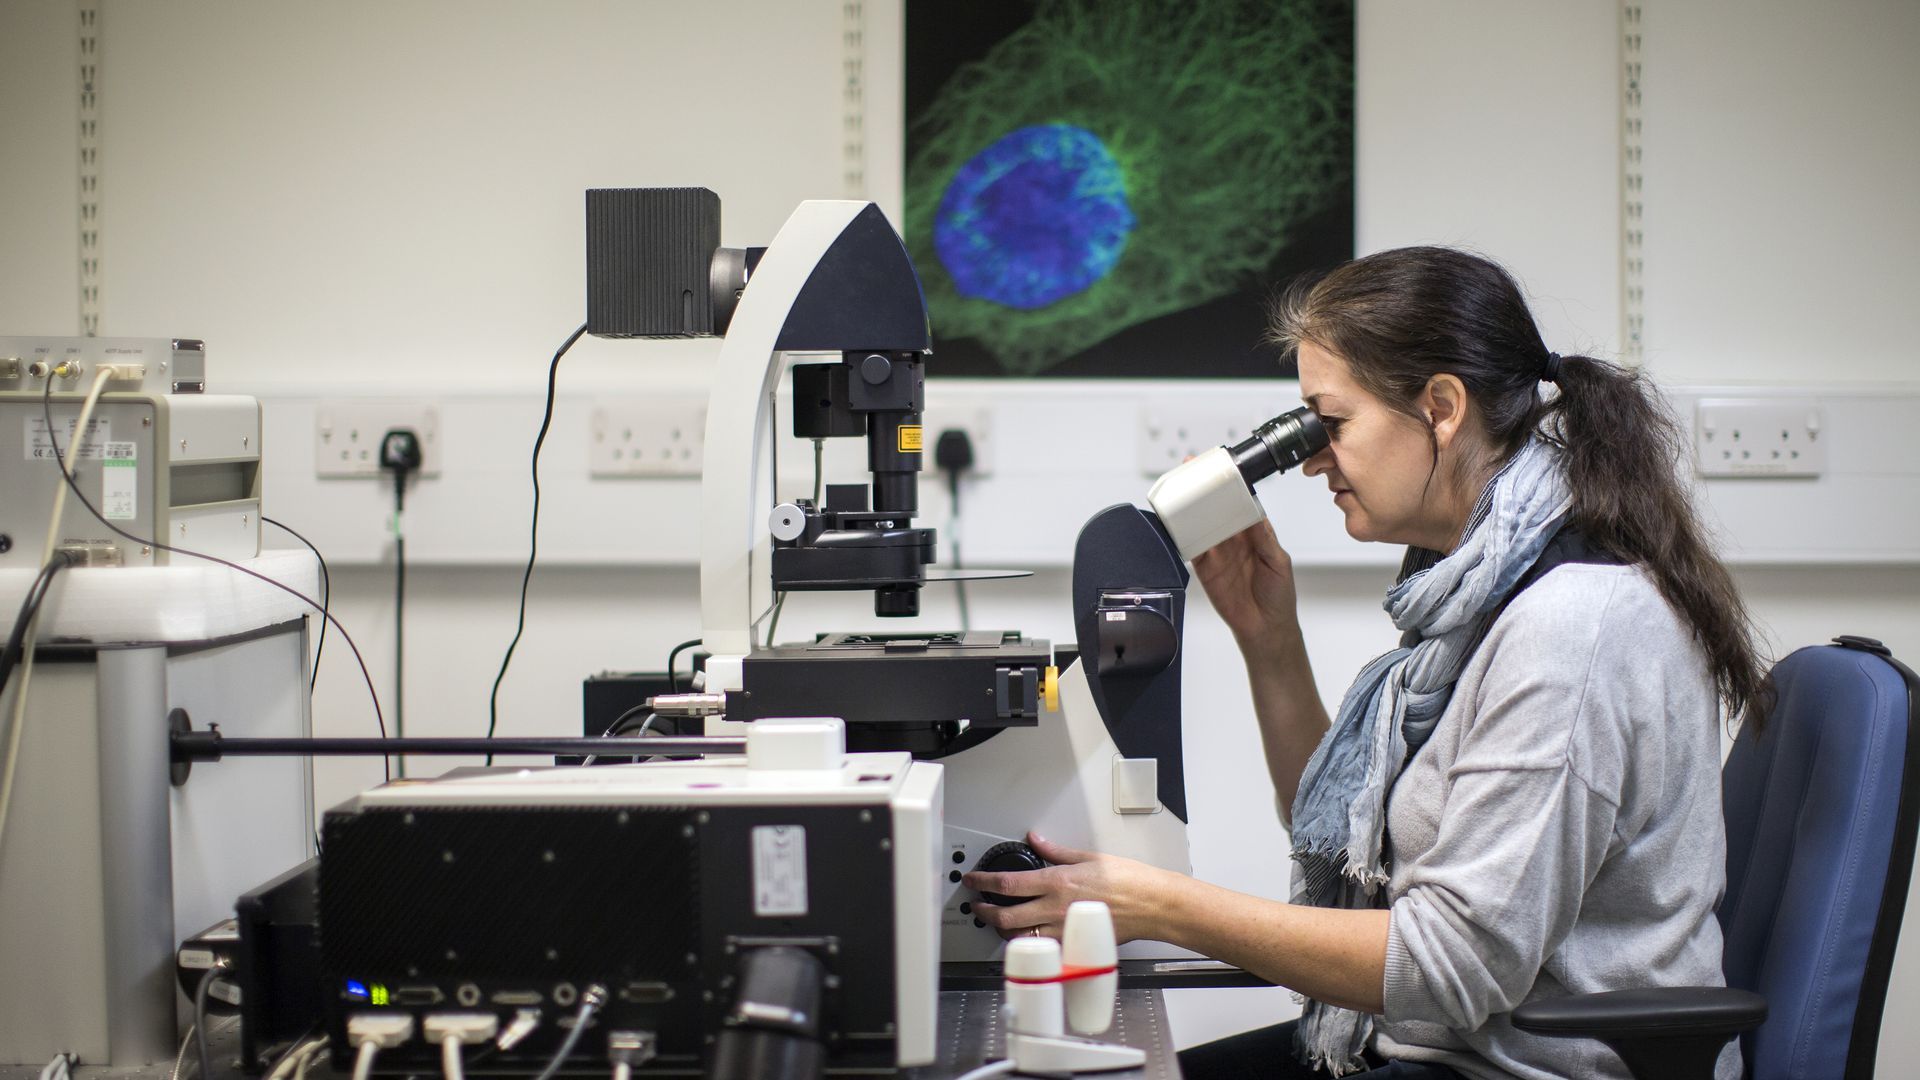 A scientist studies cells through a microscope in a lab.